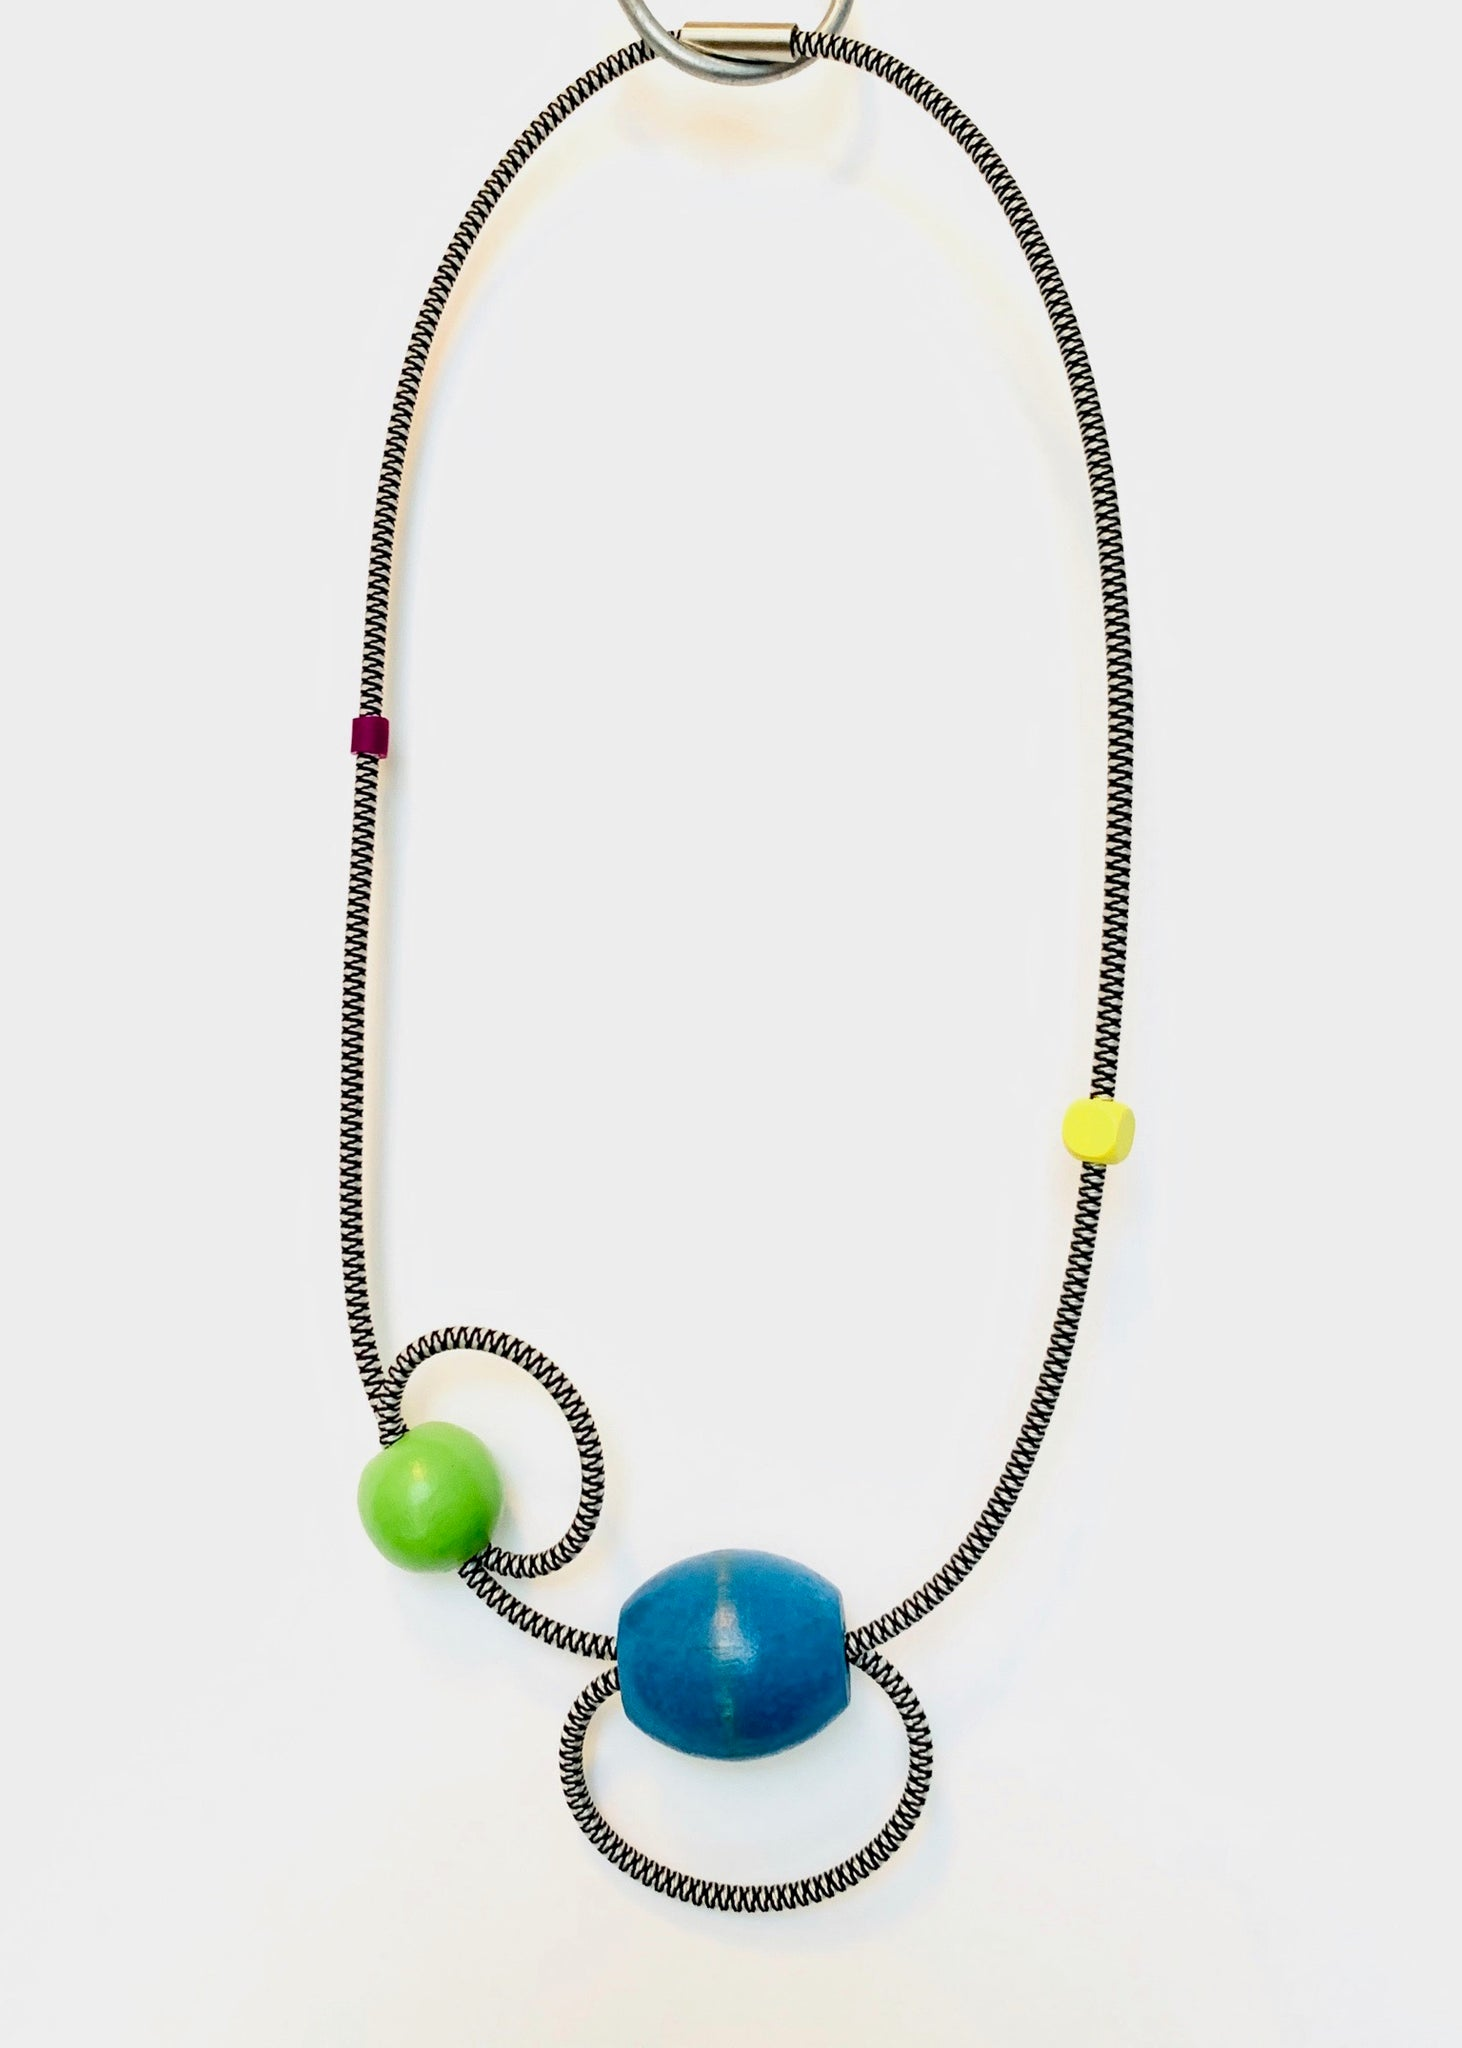 This necklace hangs 55cm long. It is made with black and white shock cord, a large vintage blue wooden bead, green+yellow wooden beads and purple silicone tubung bead.